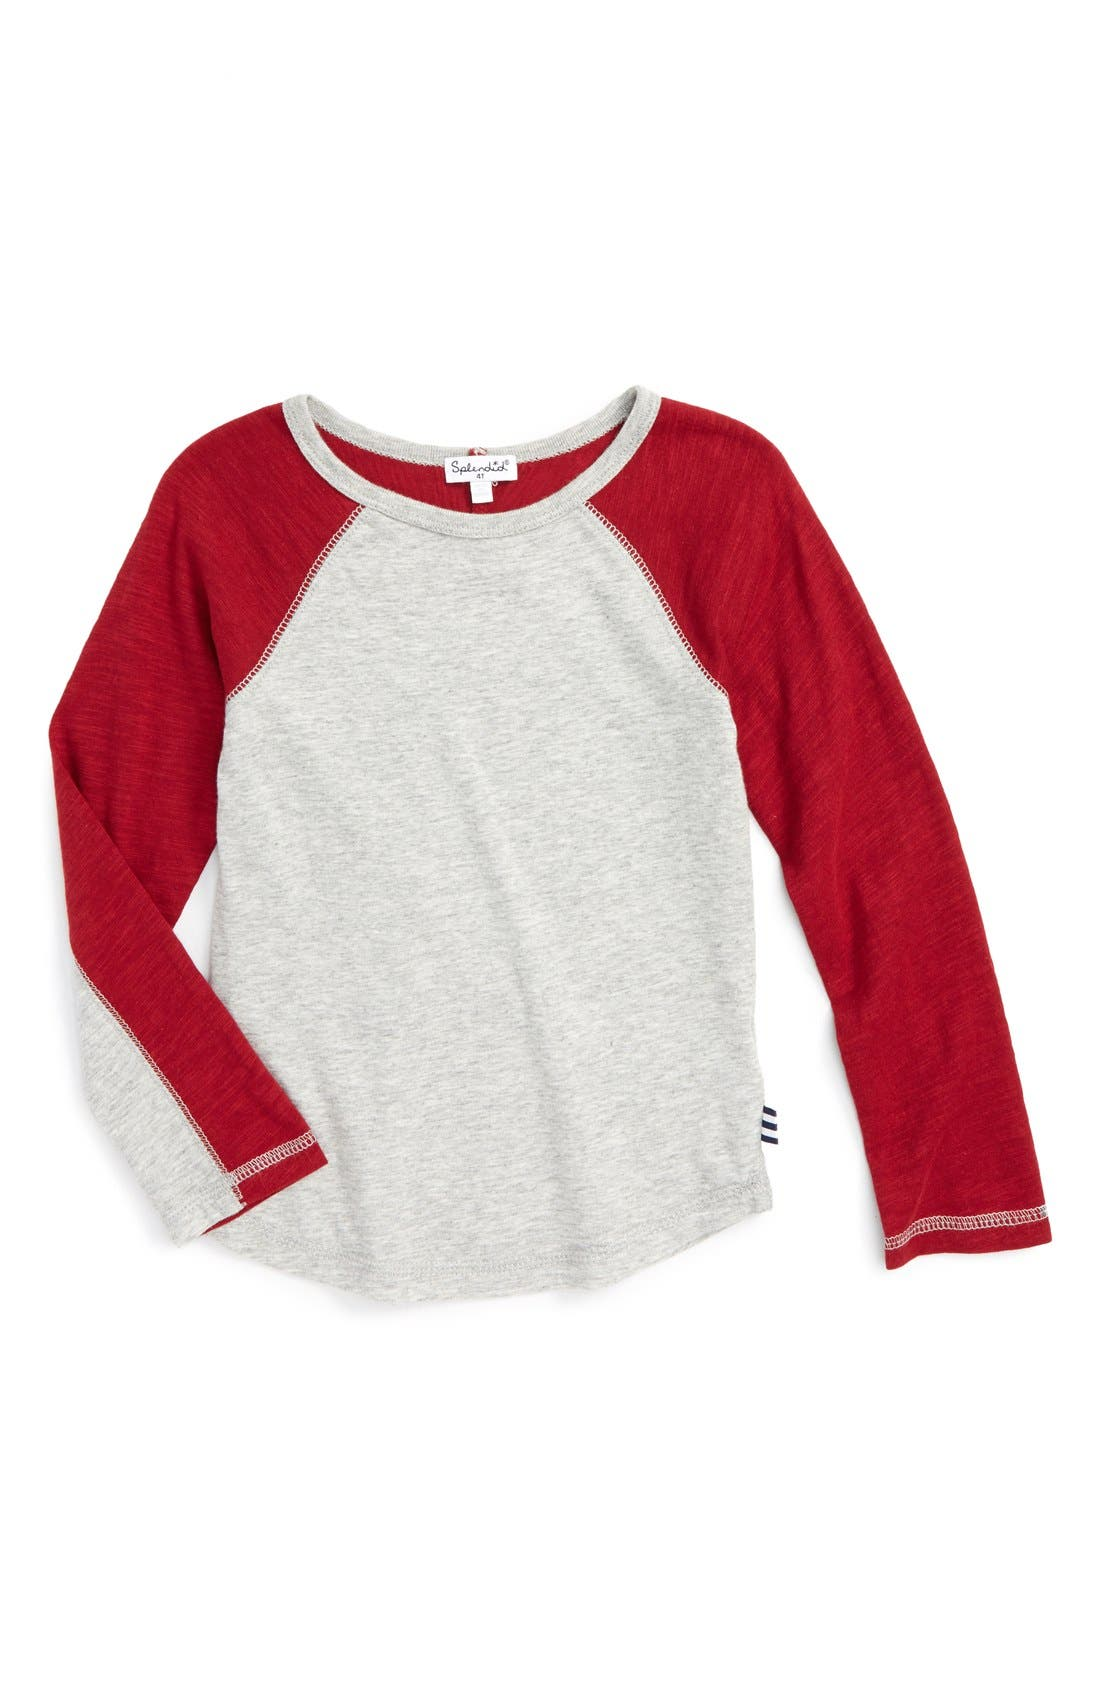 Slub Knit T-Shirt,                         Main,                         color, Grey Heather Red